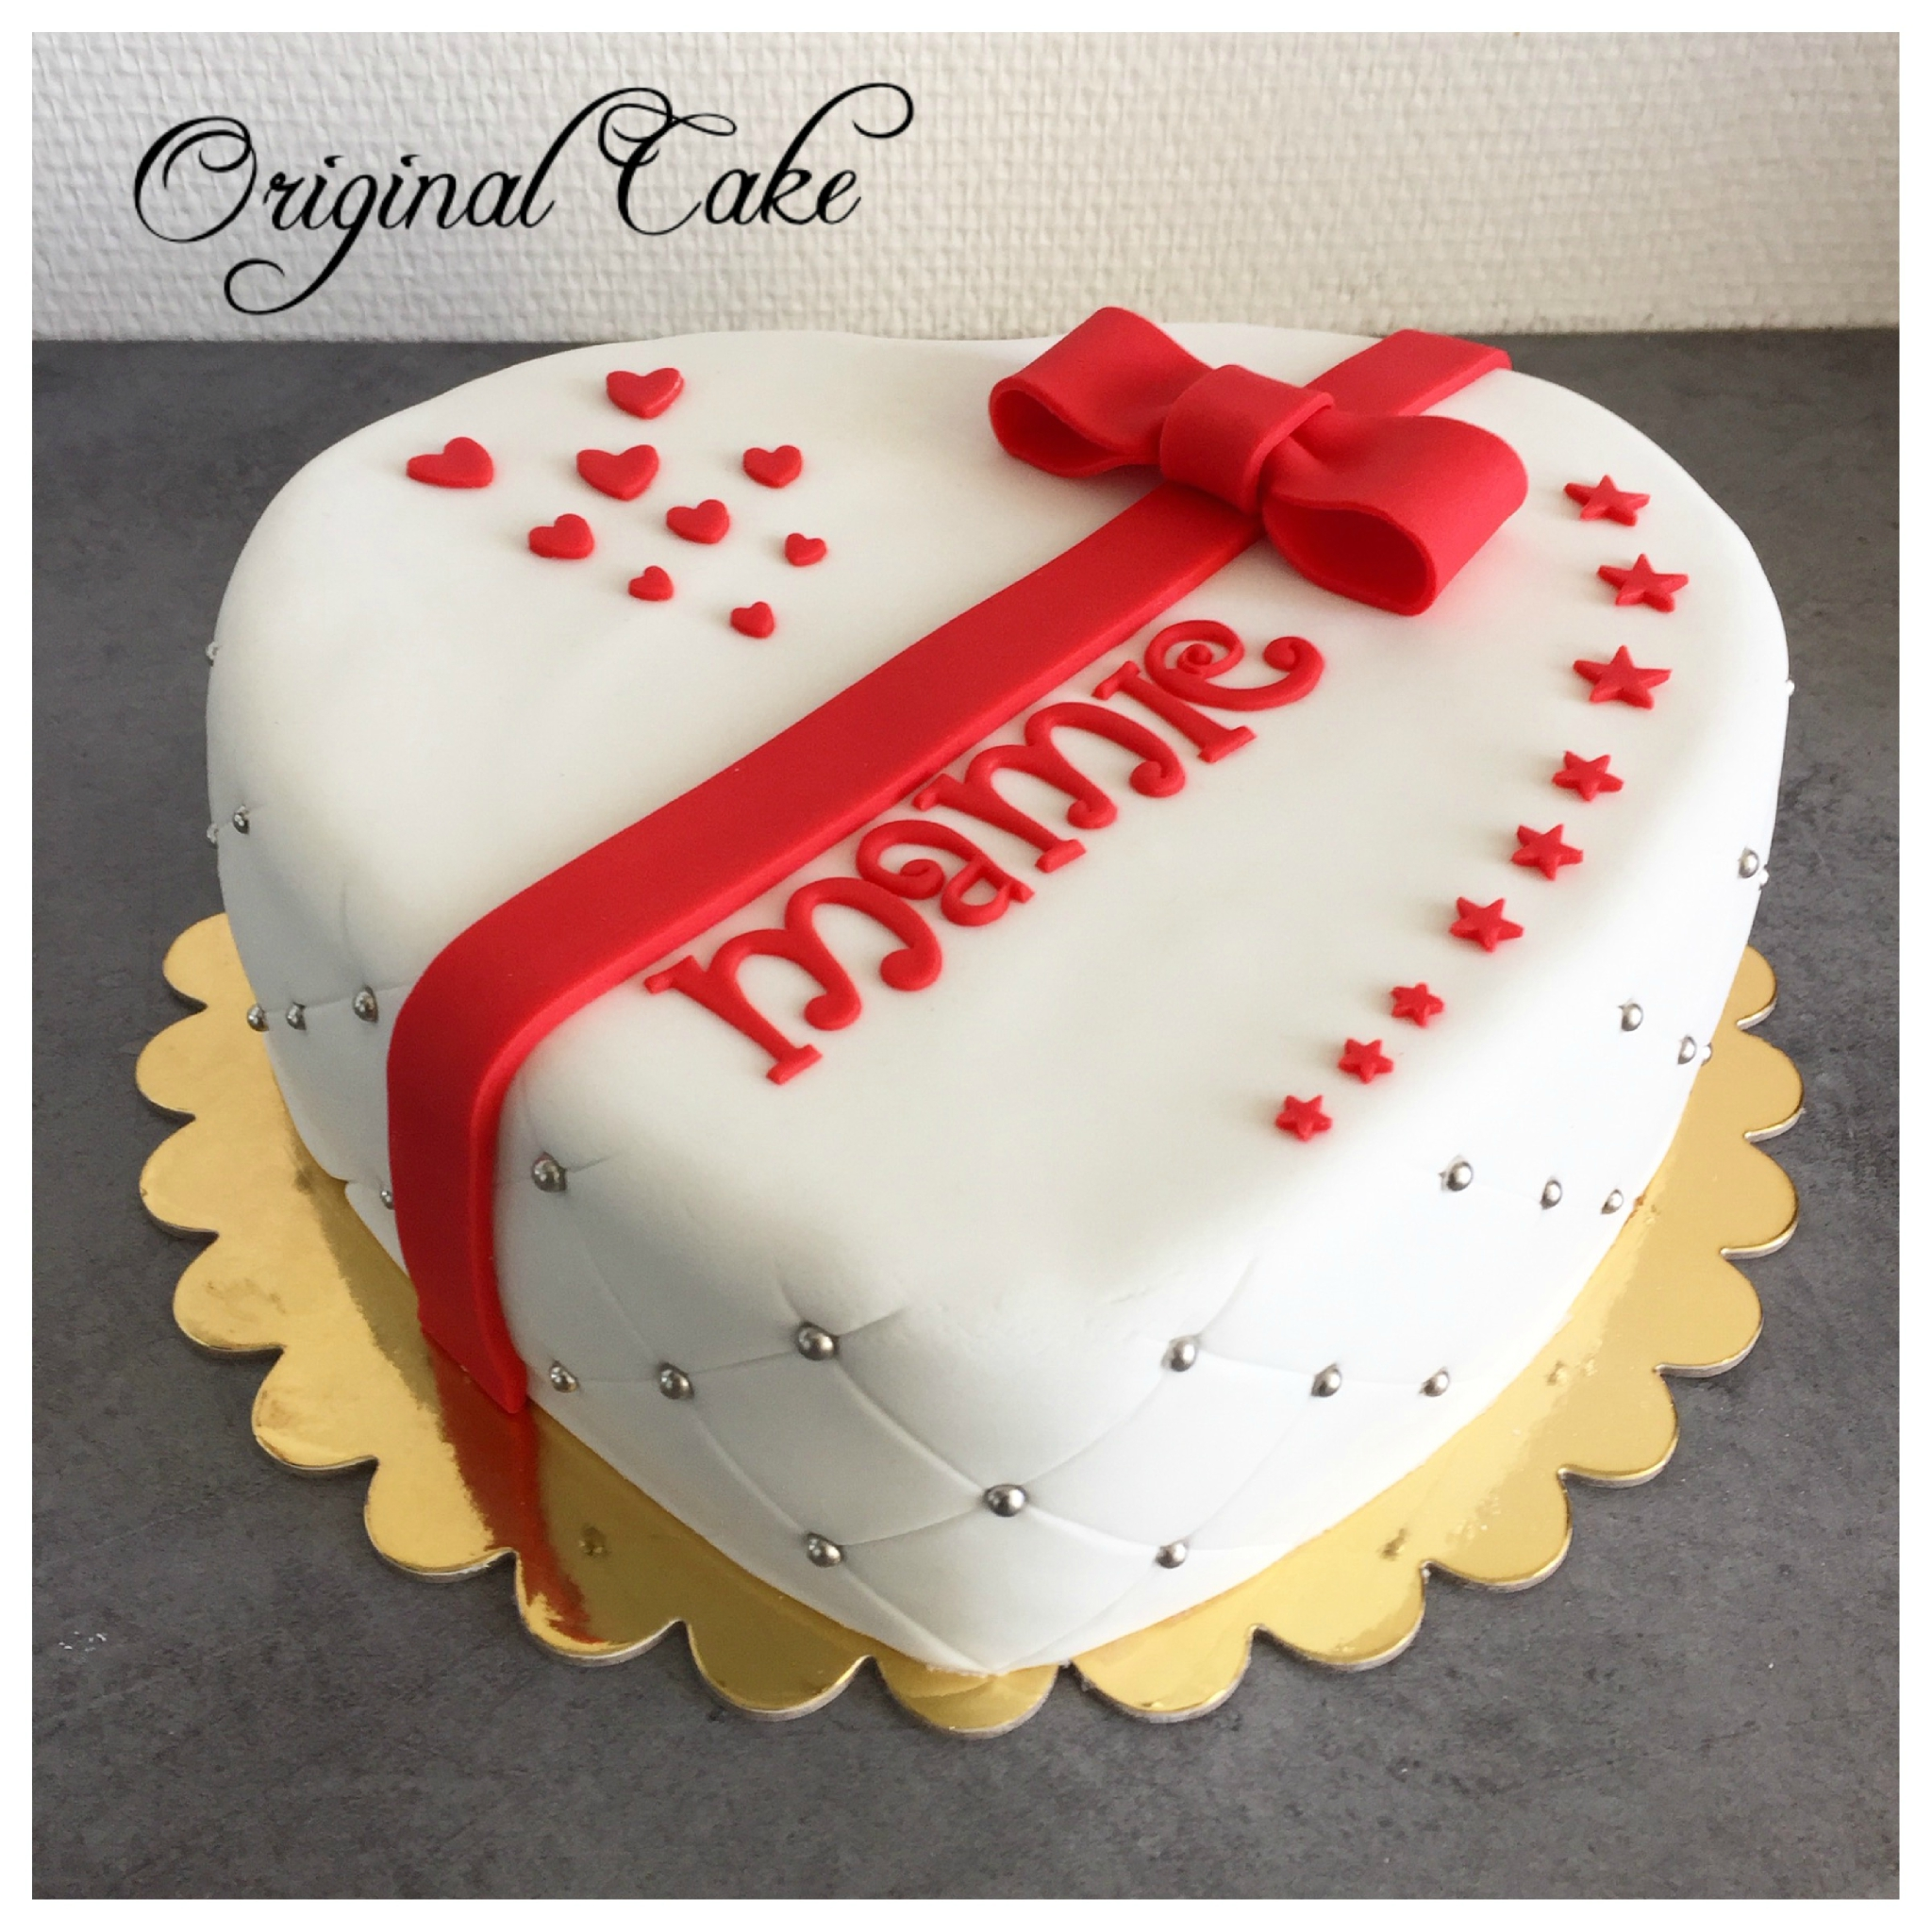 Decoration Gateau Originale Gâteau Coeur Original Cake